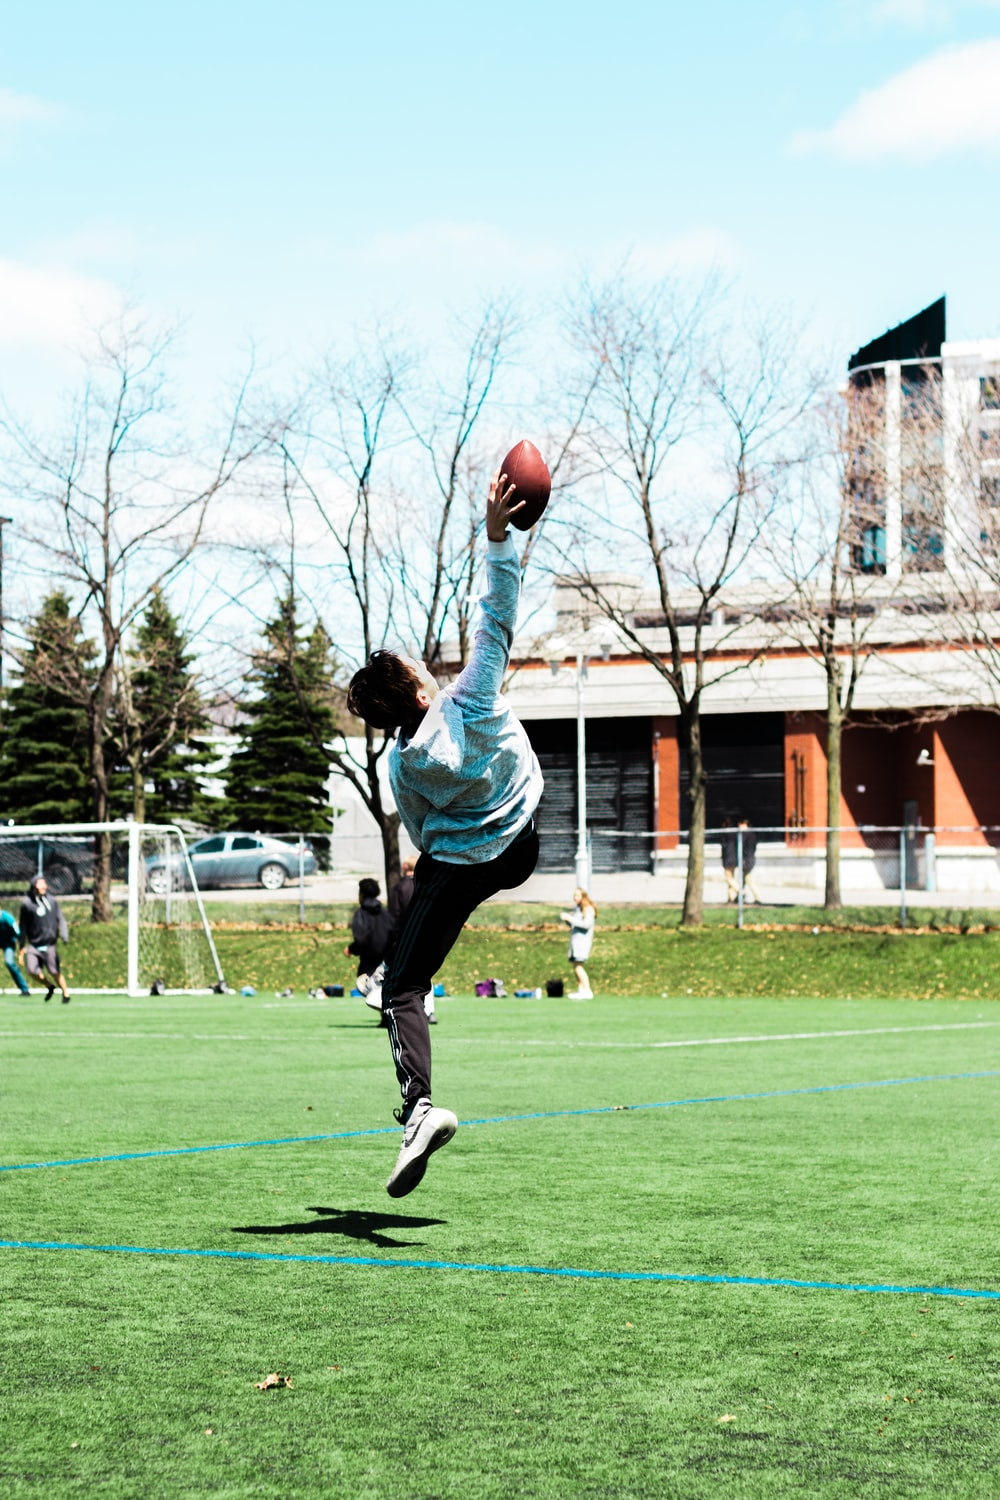 man catching football at the field